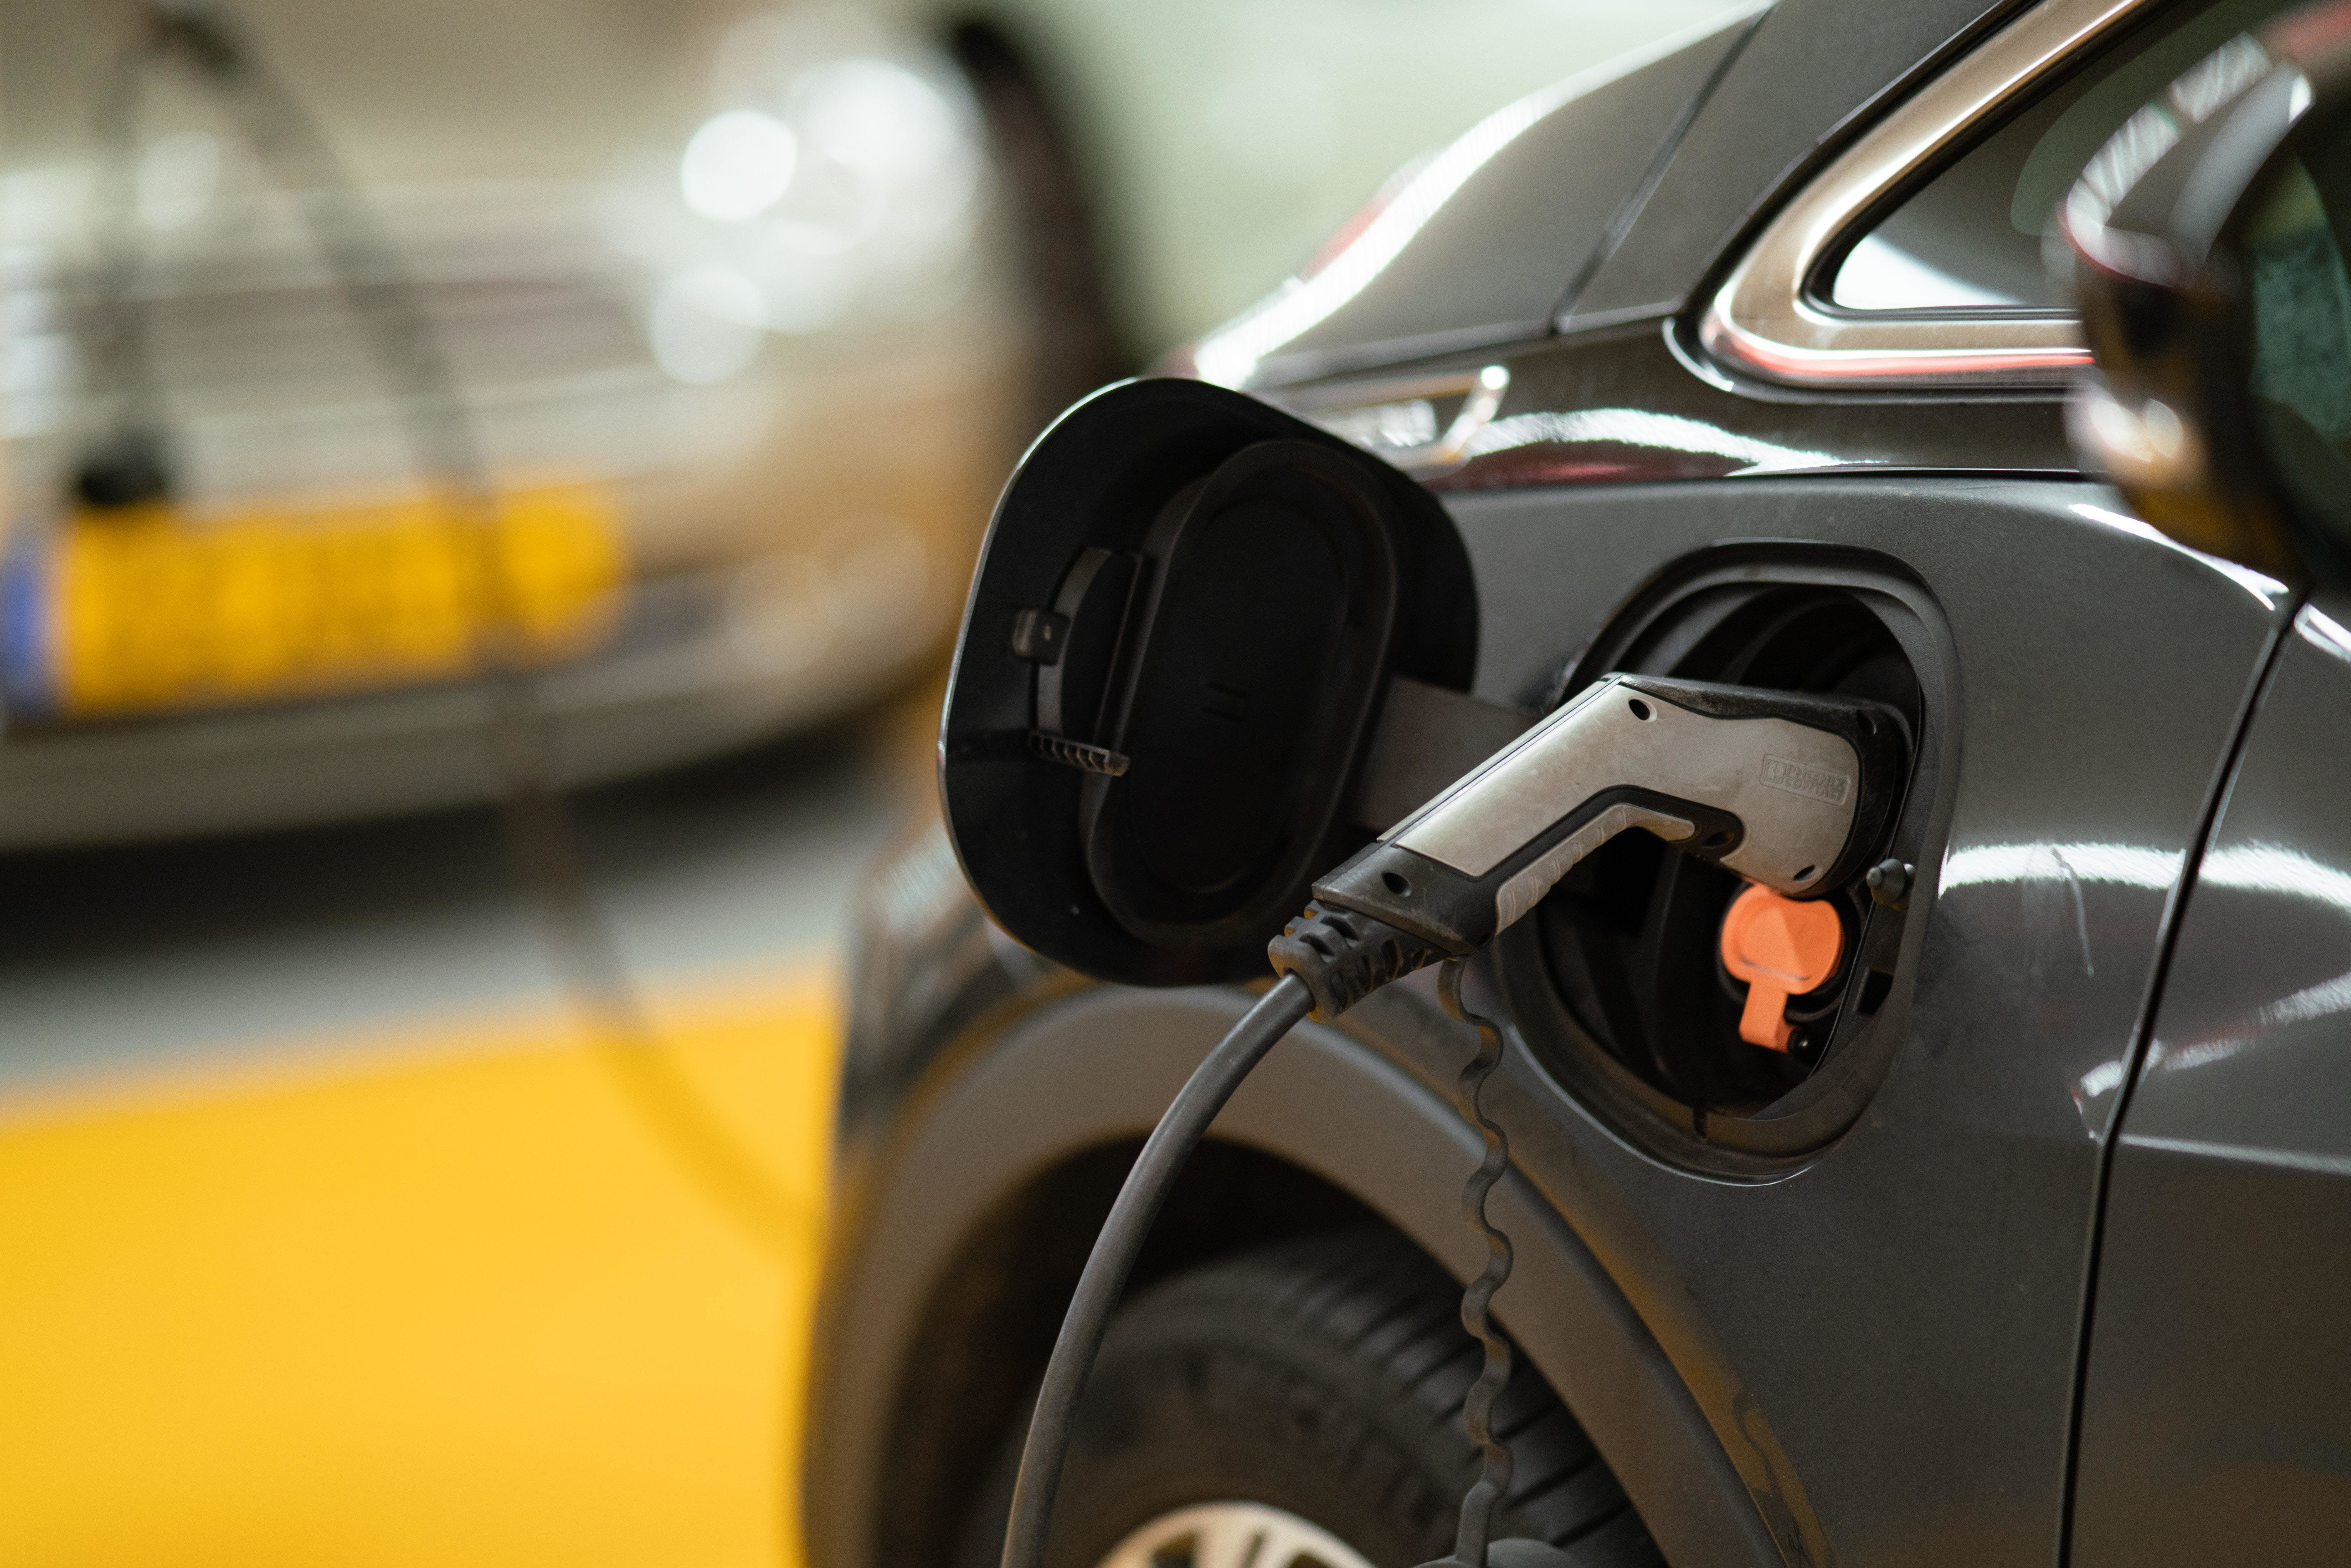 more electric vehicle chargers like this one are needed in the U.S. particularly in rural areas